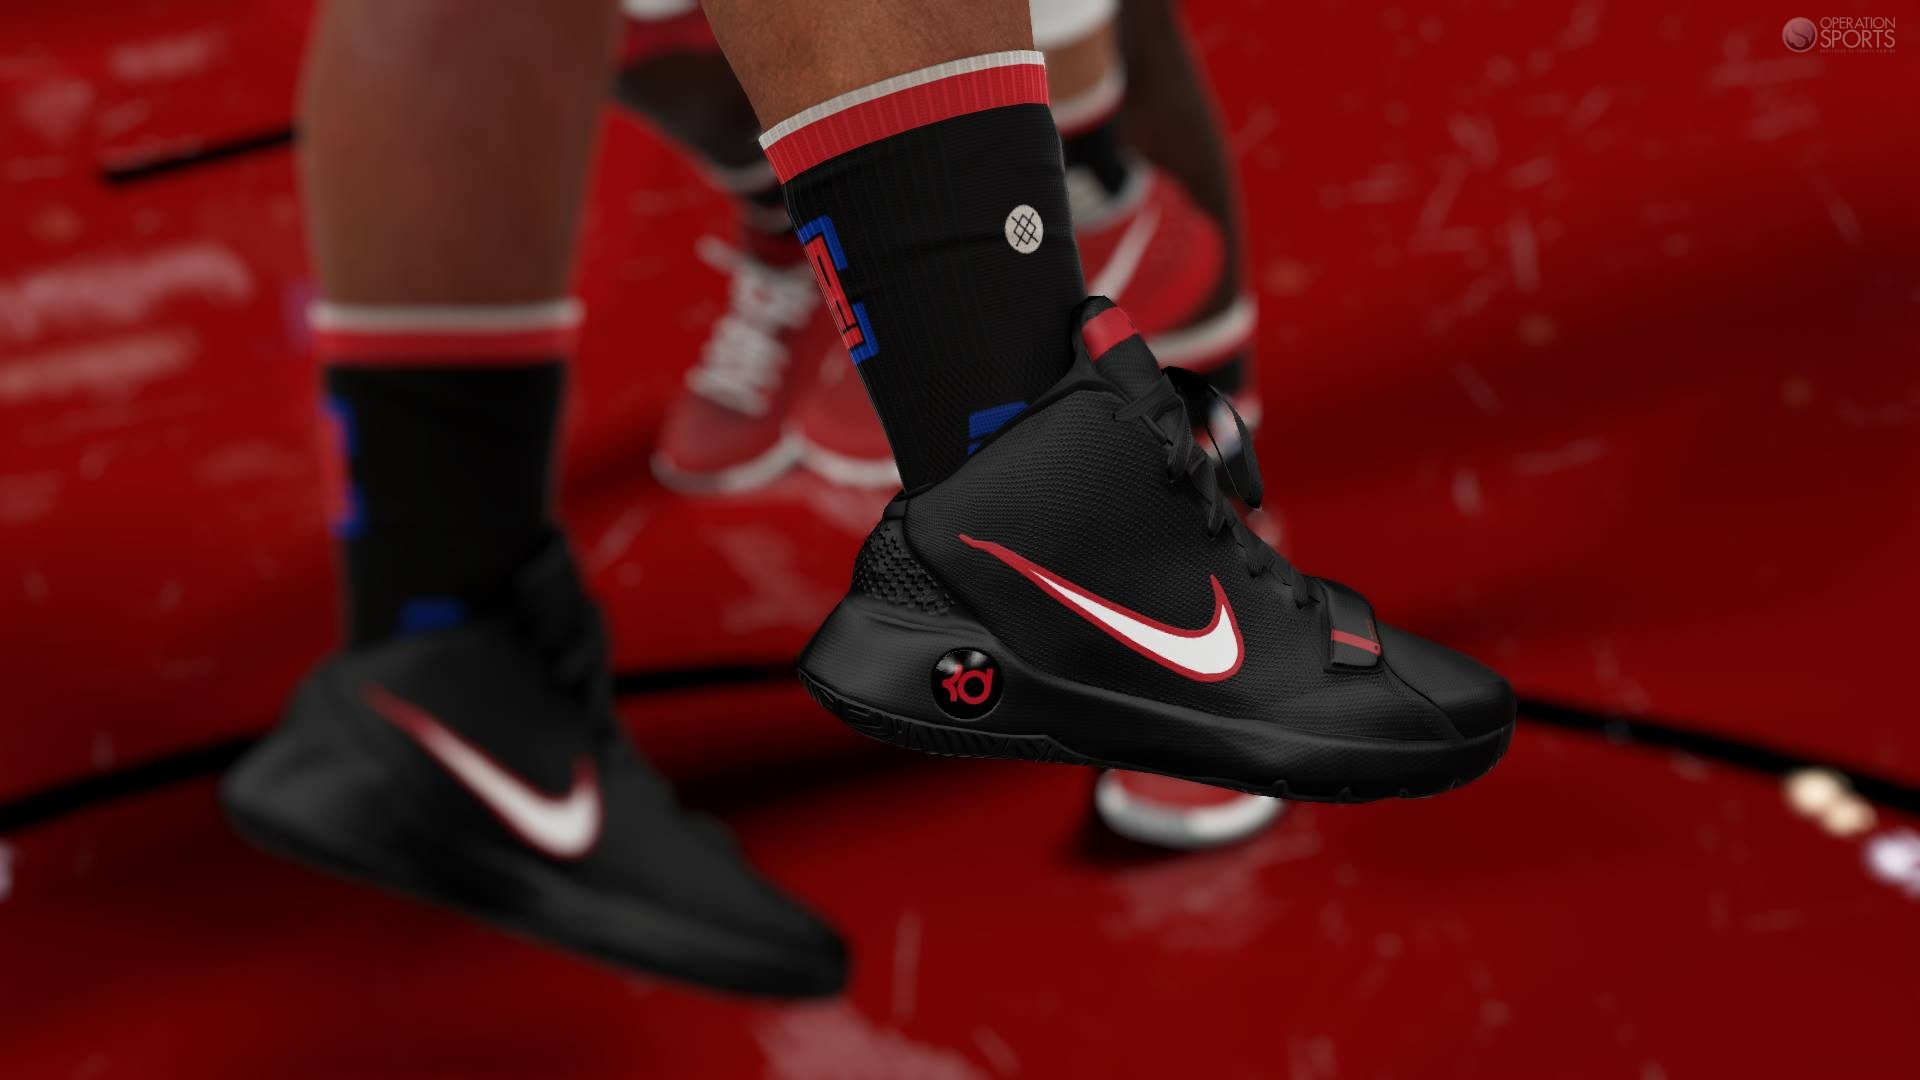 More New Shoes Arrive in NBA 2K16